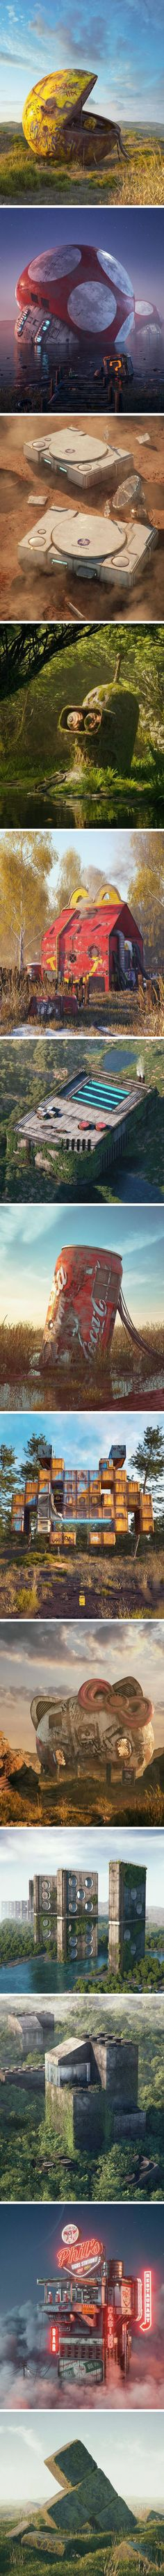 Pop Culture Apocalypse In Amazing Digital Art By Filip Hodas ^^^i love this